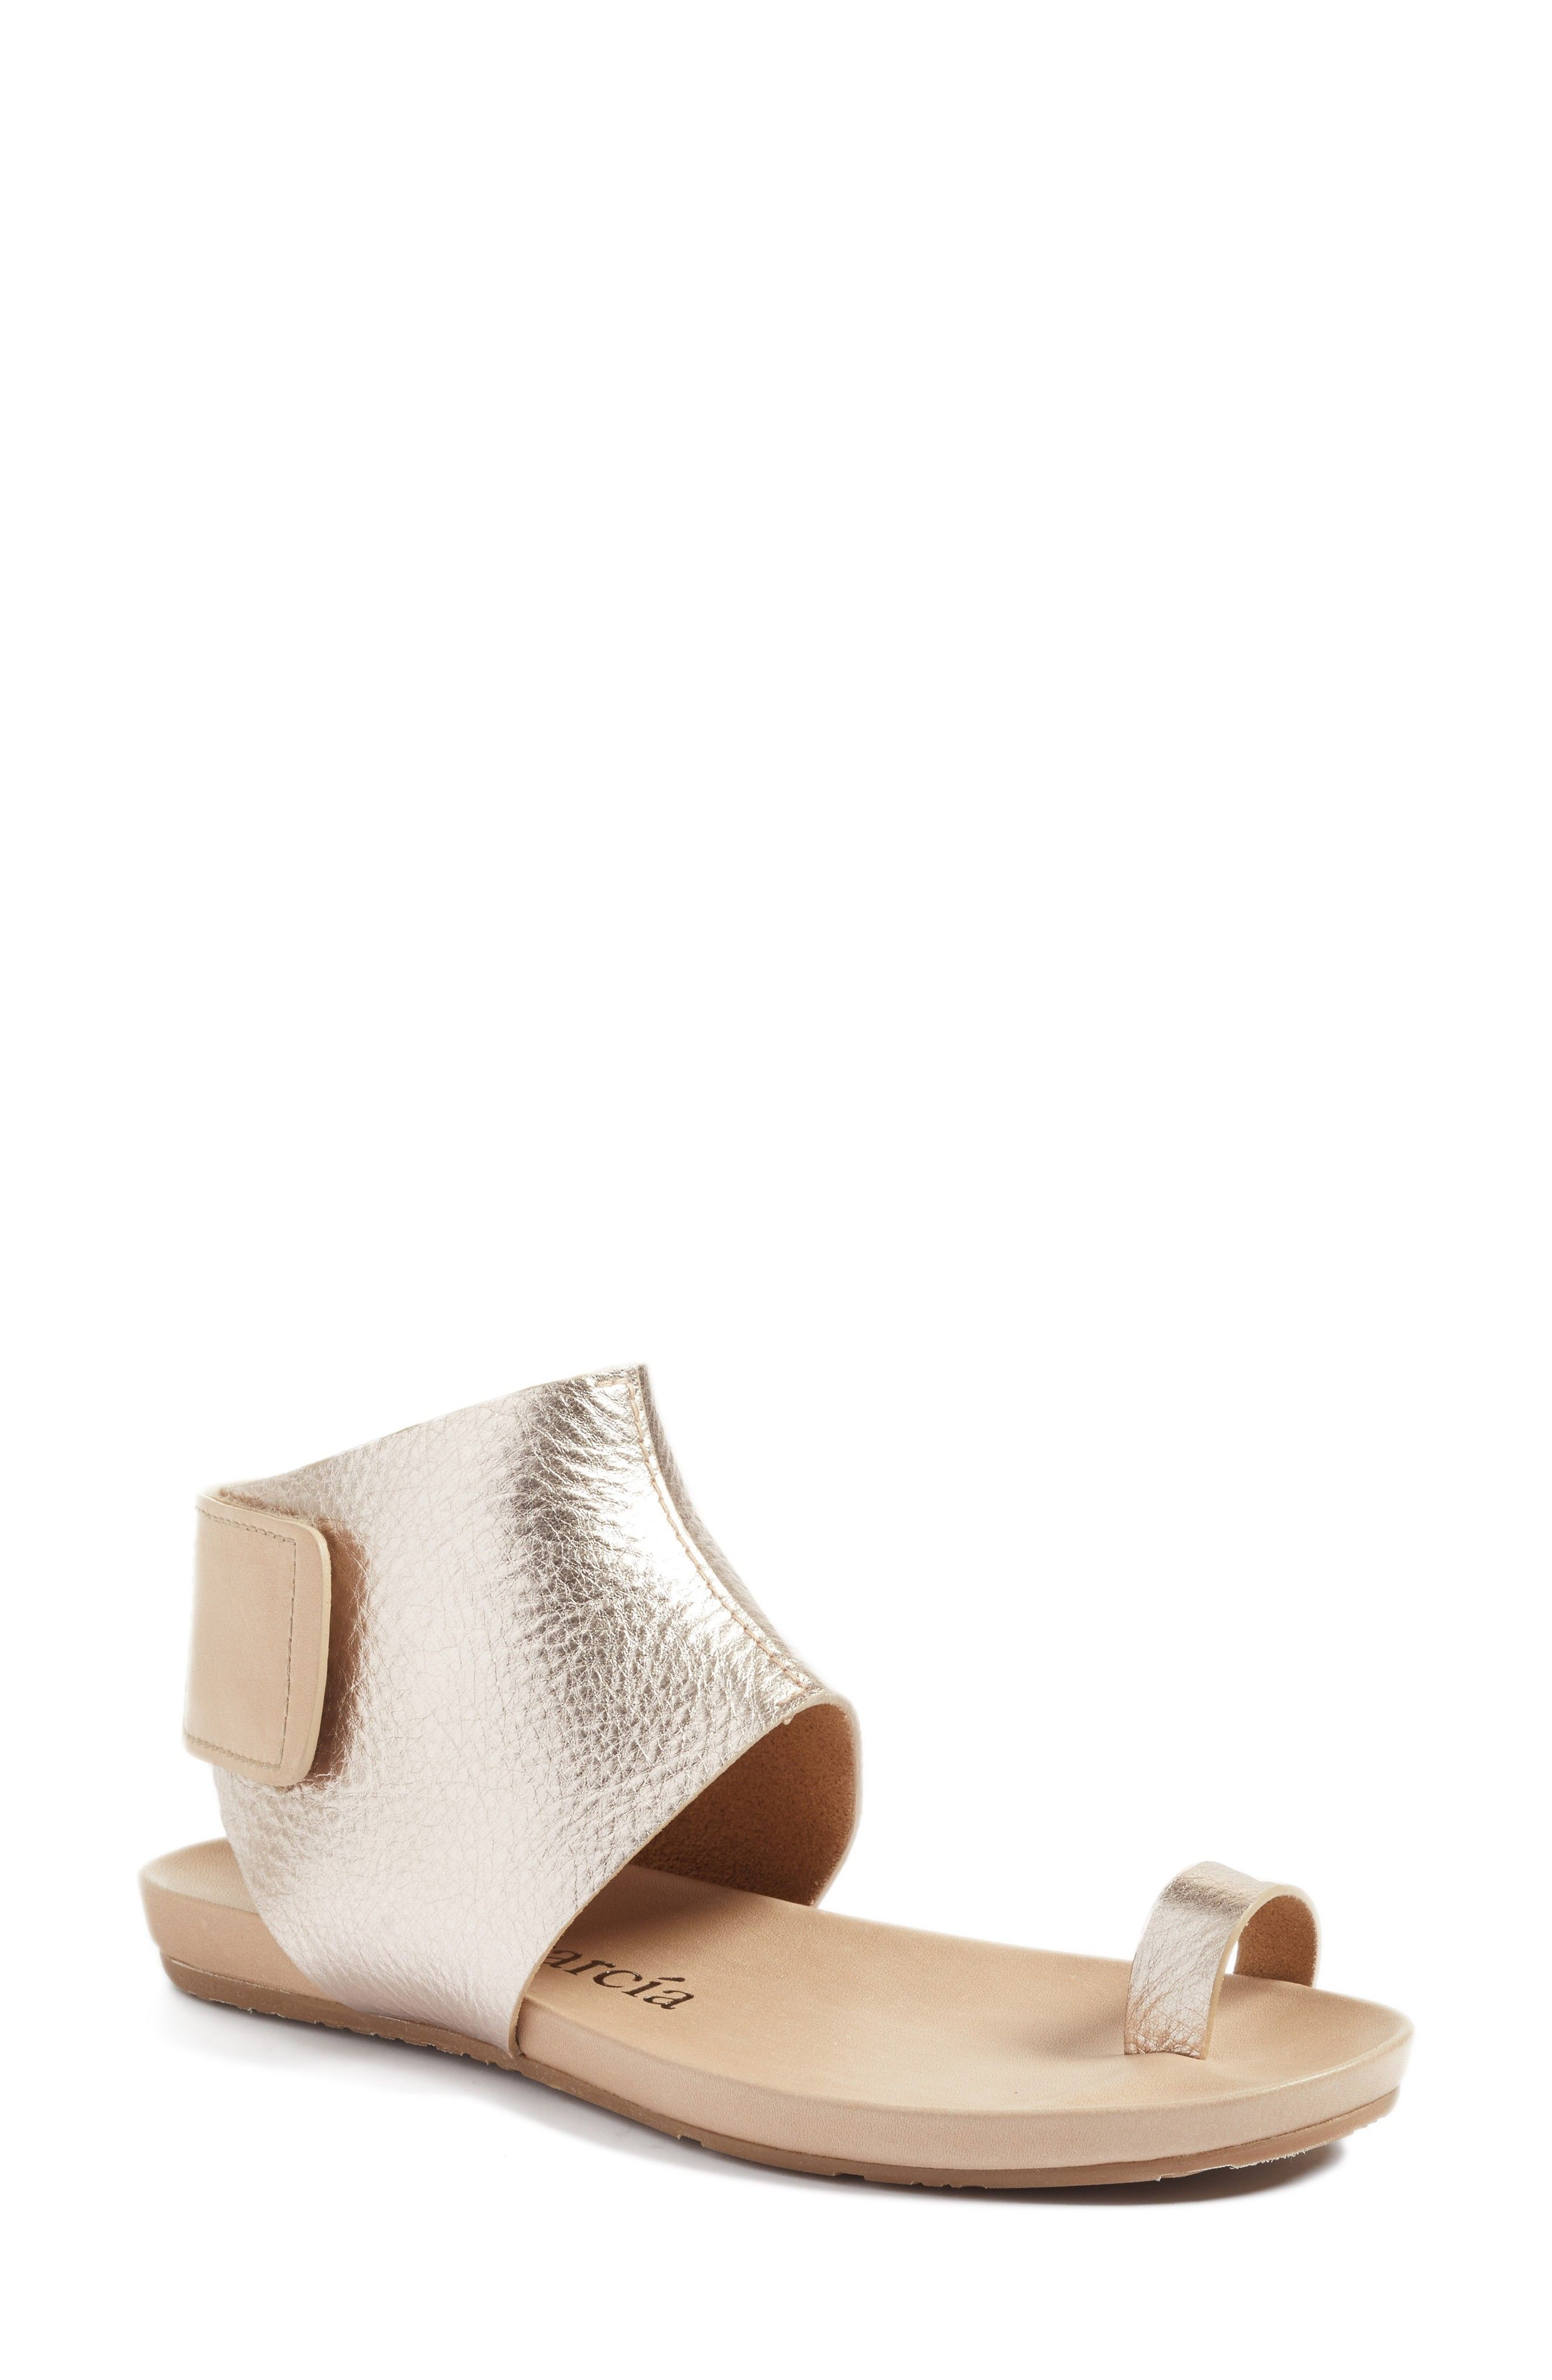 Pedro Garcia Leather Ankle Cuff Sandals cheap for sale stockist online 8r2QH